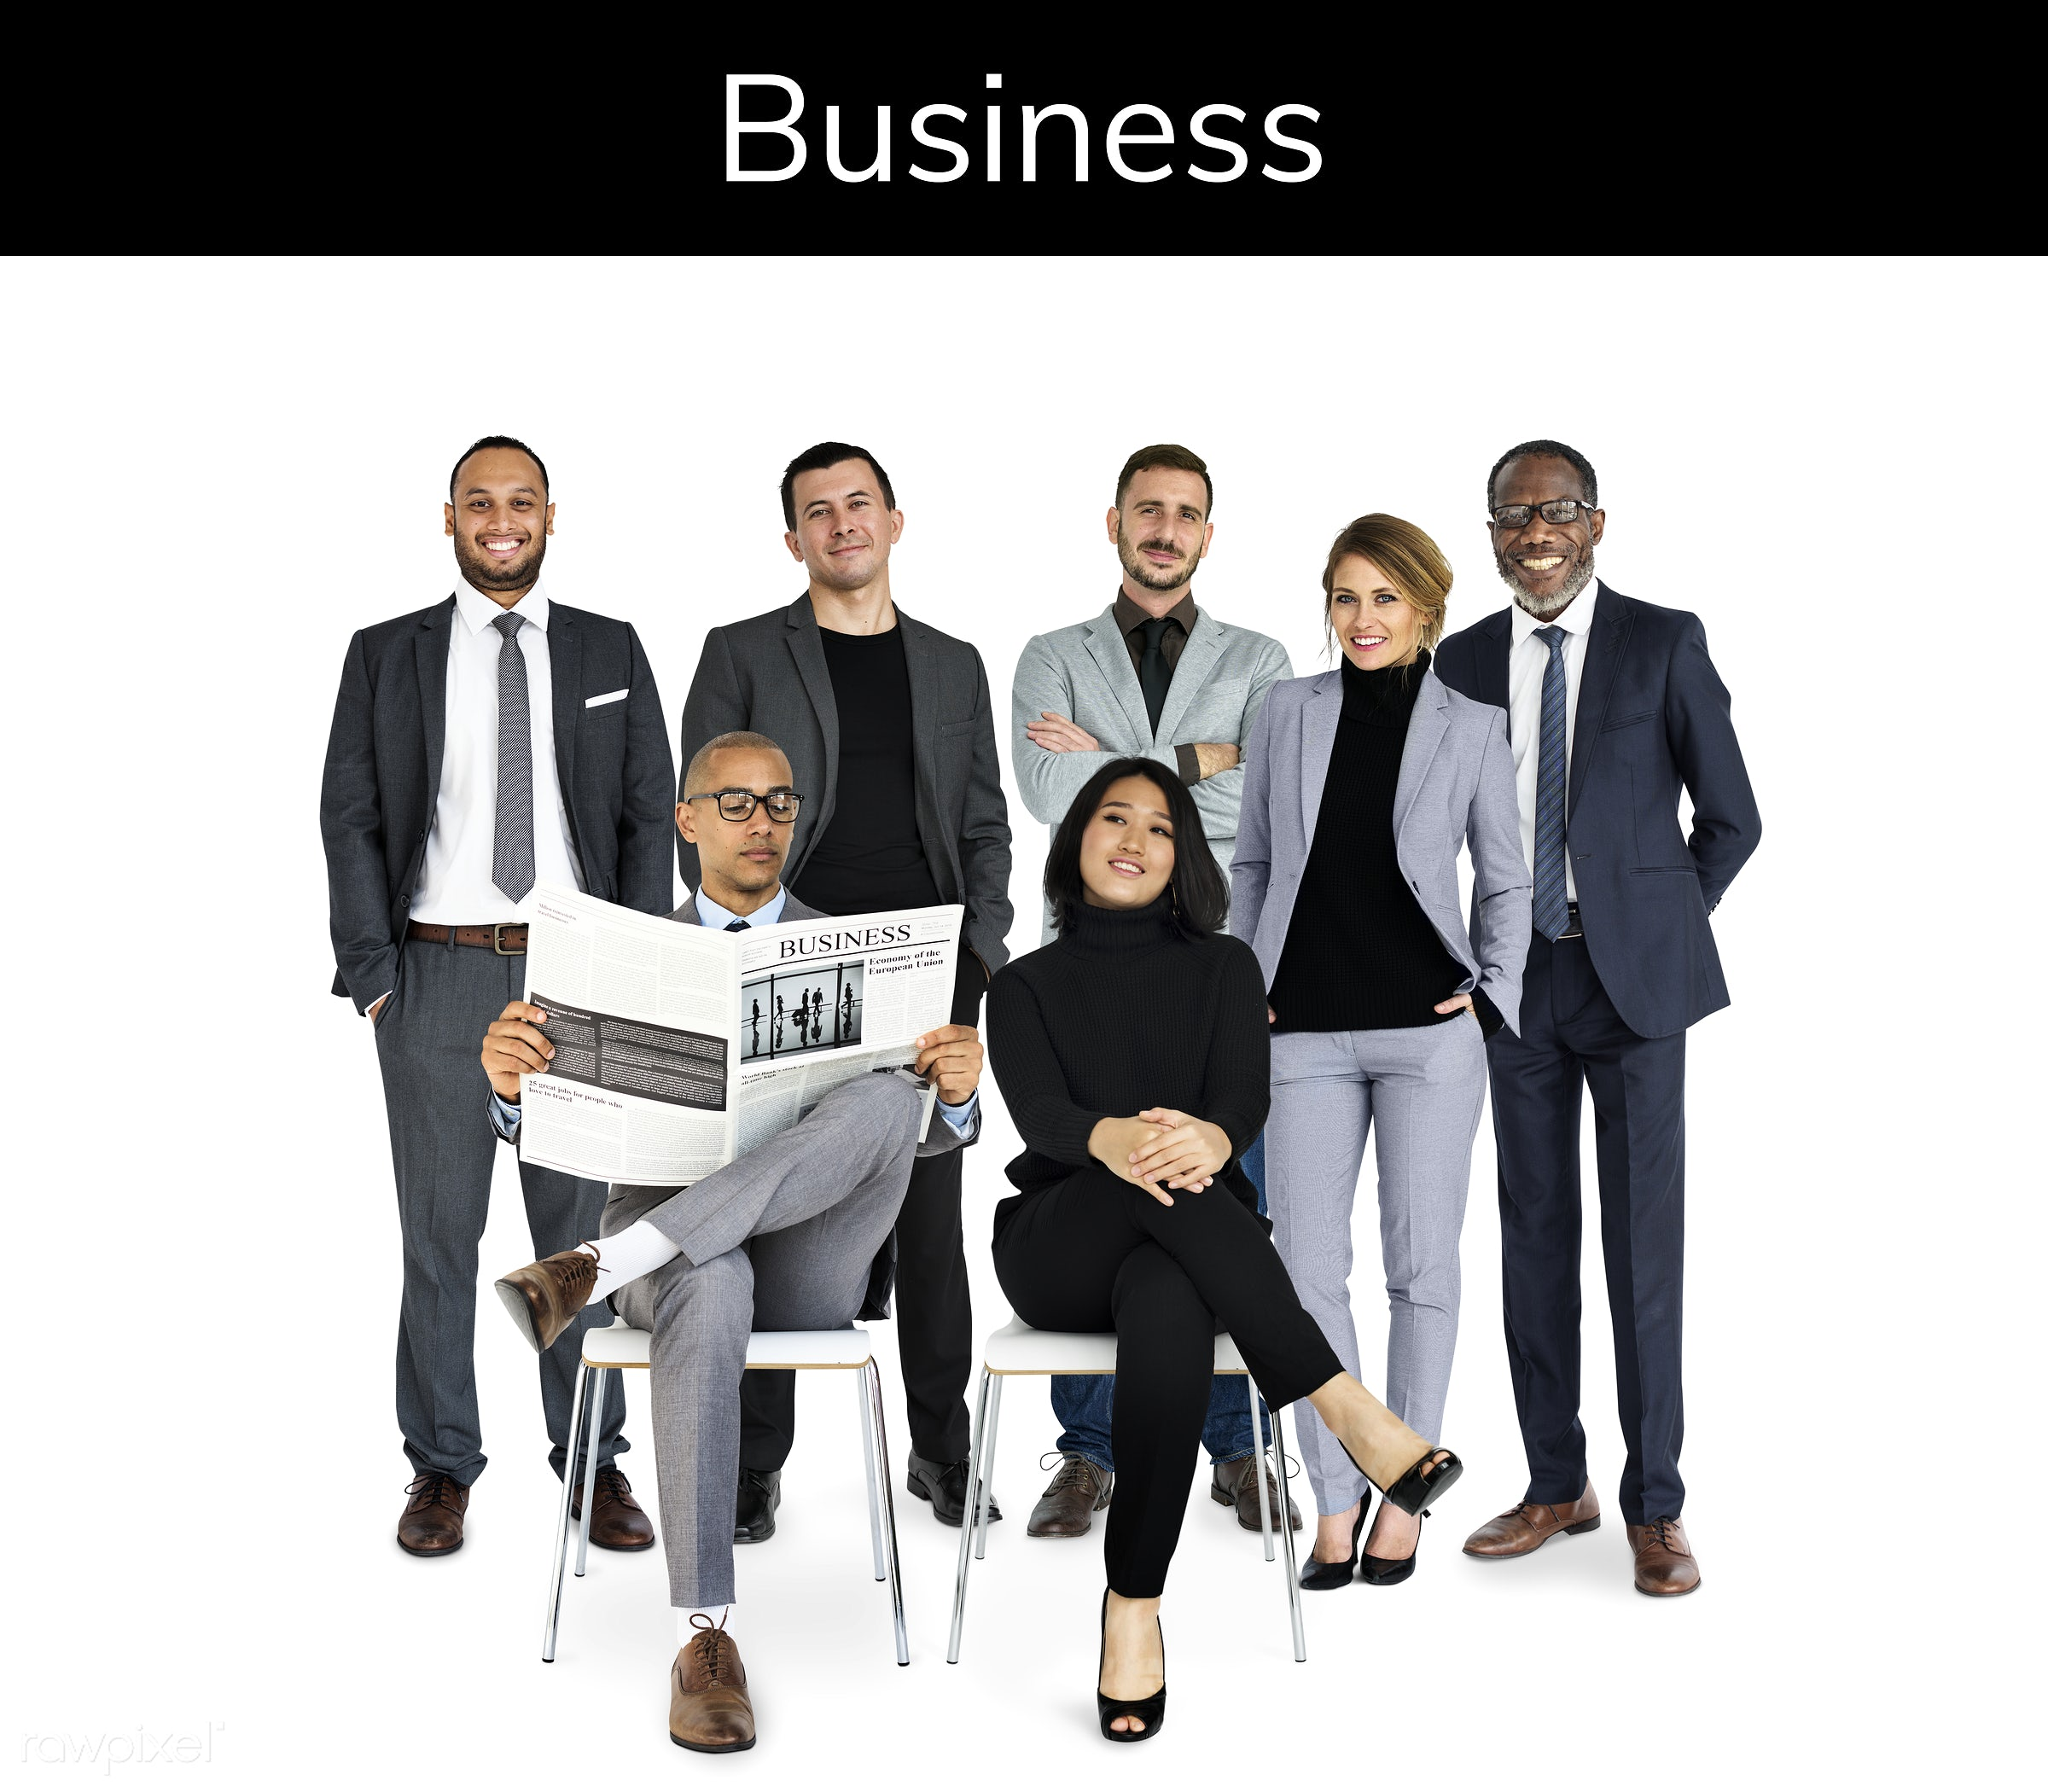 Diverse people set - adult, african descent, asian, business, businessman, businessmen, businesswoman, businesswomen, career...